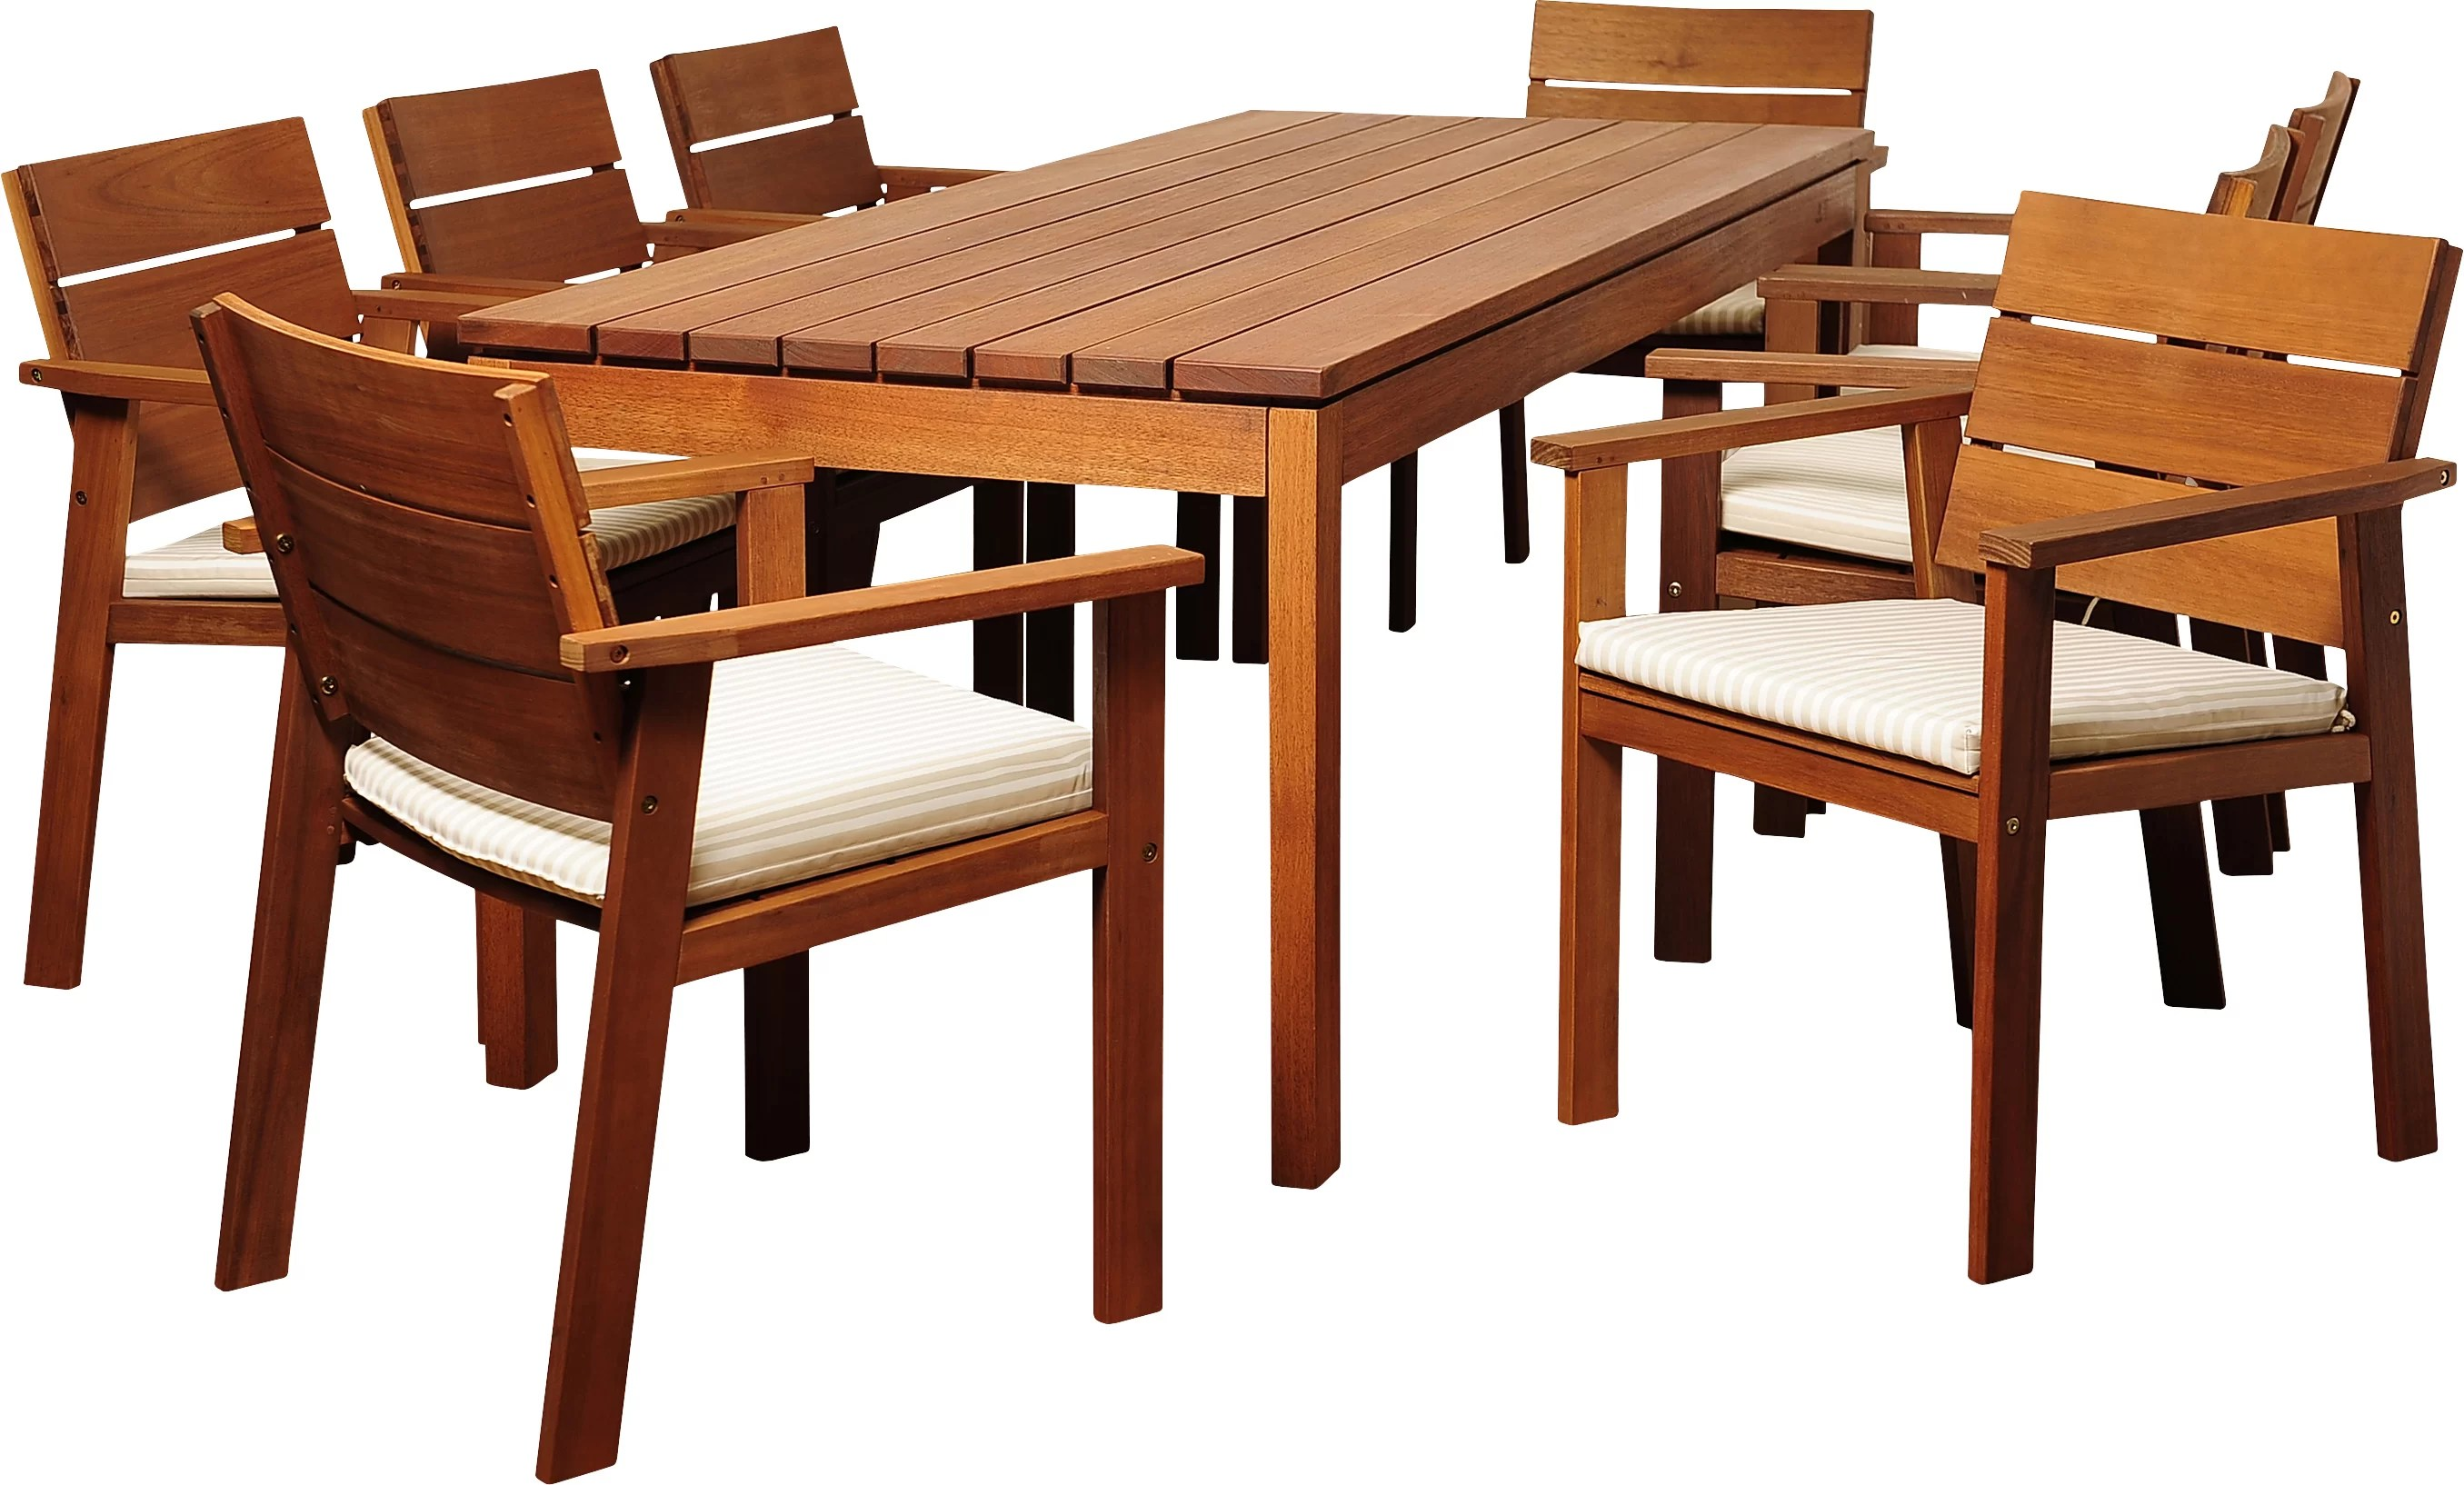 9 Piece Outdoor Dining Set Brighton 9 Piece Rectangular Wood Dining Set